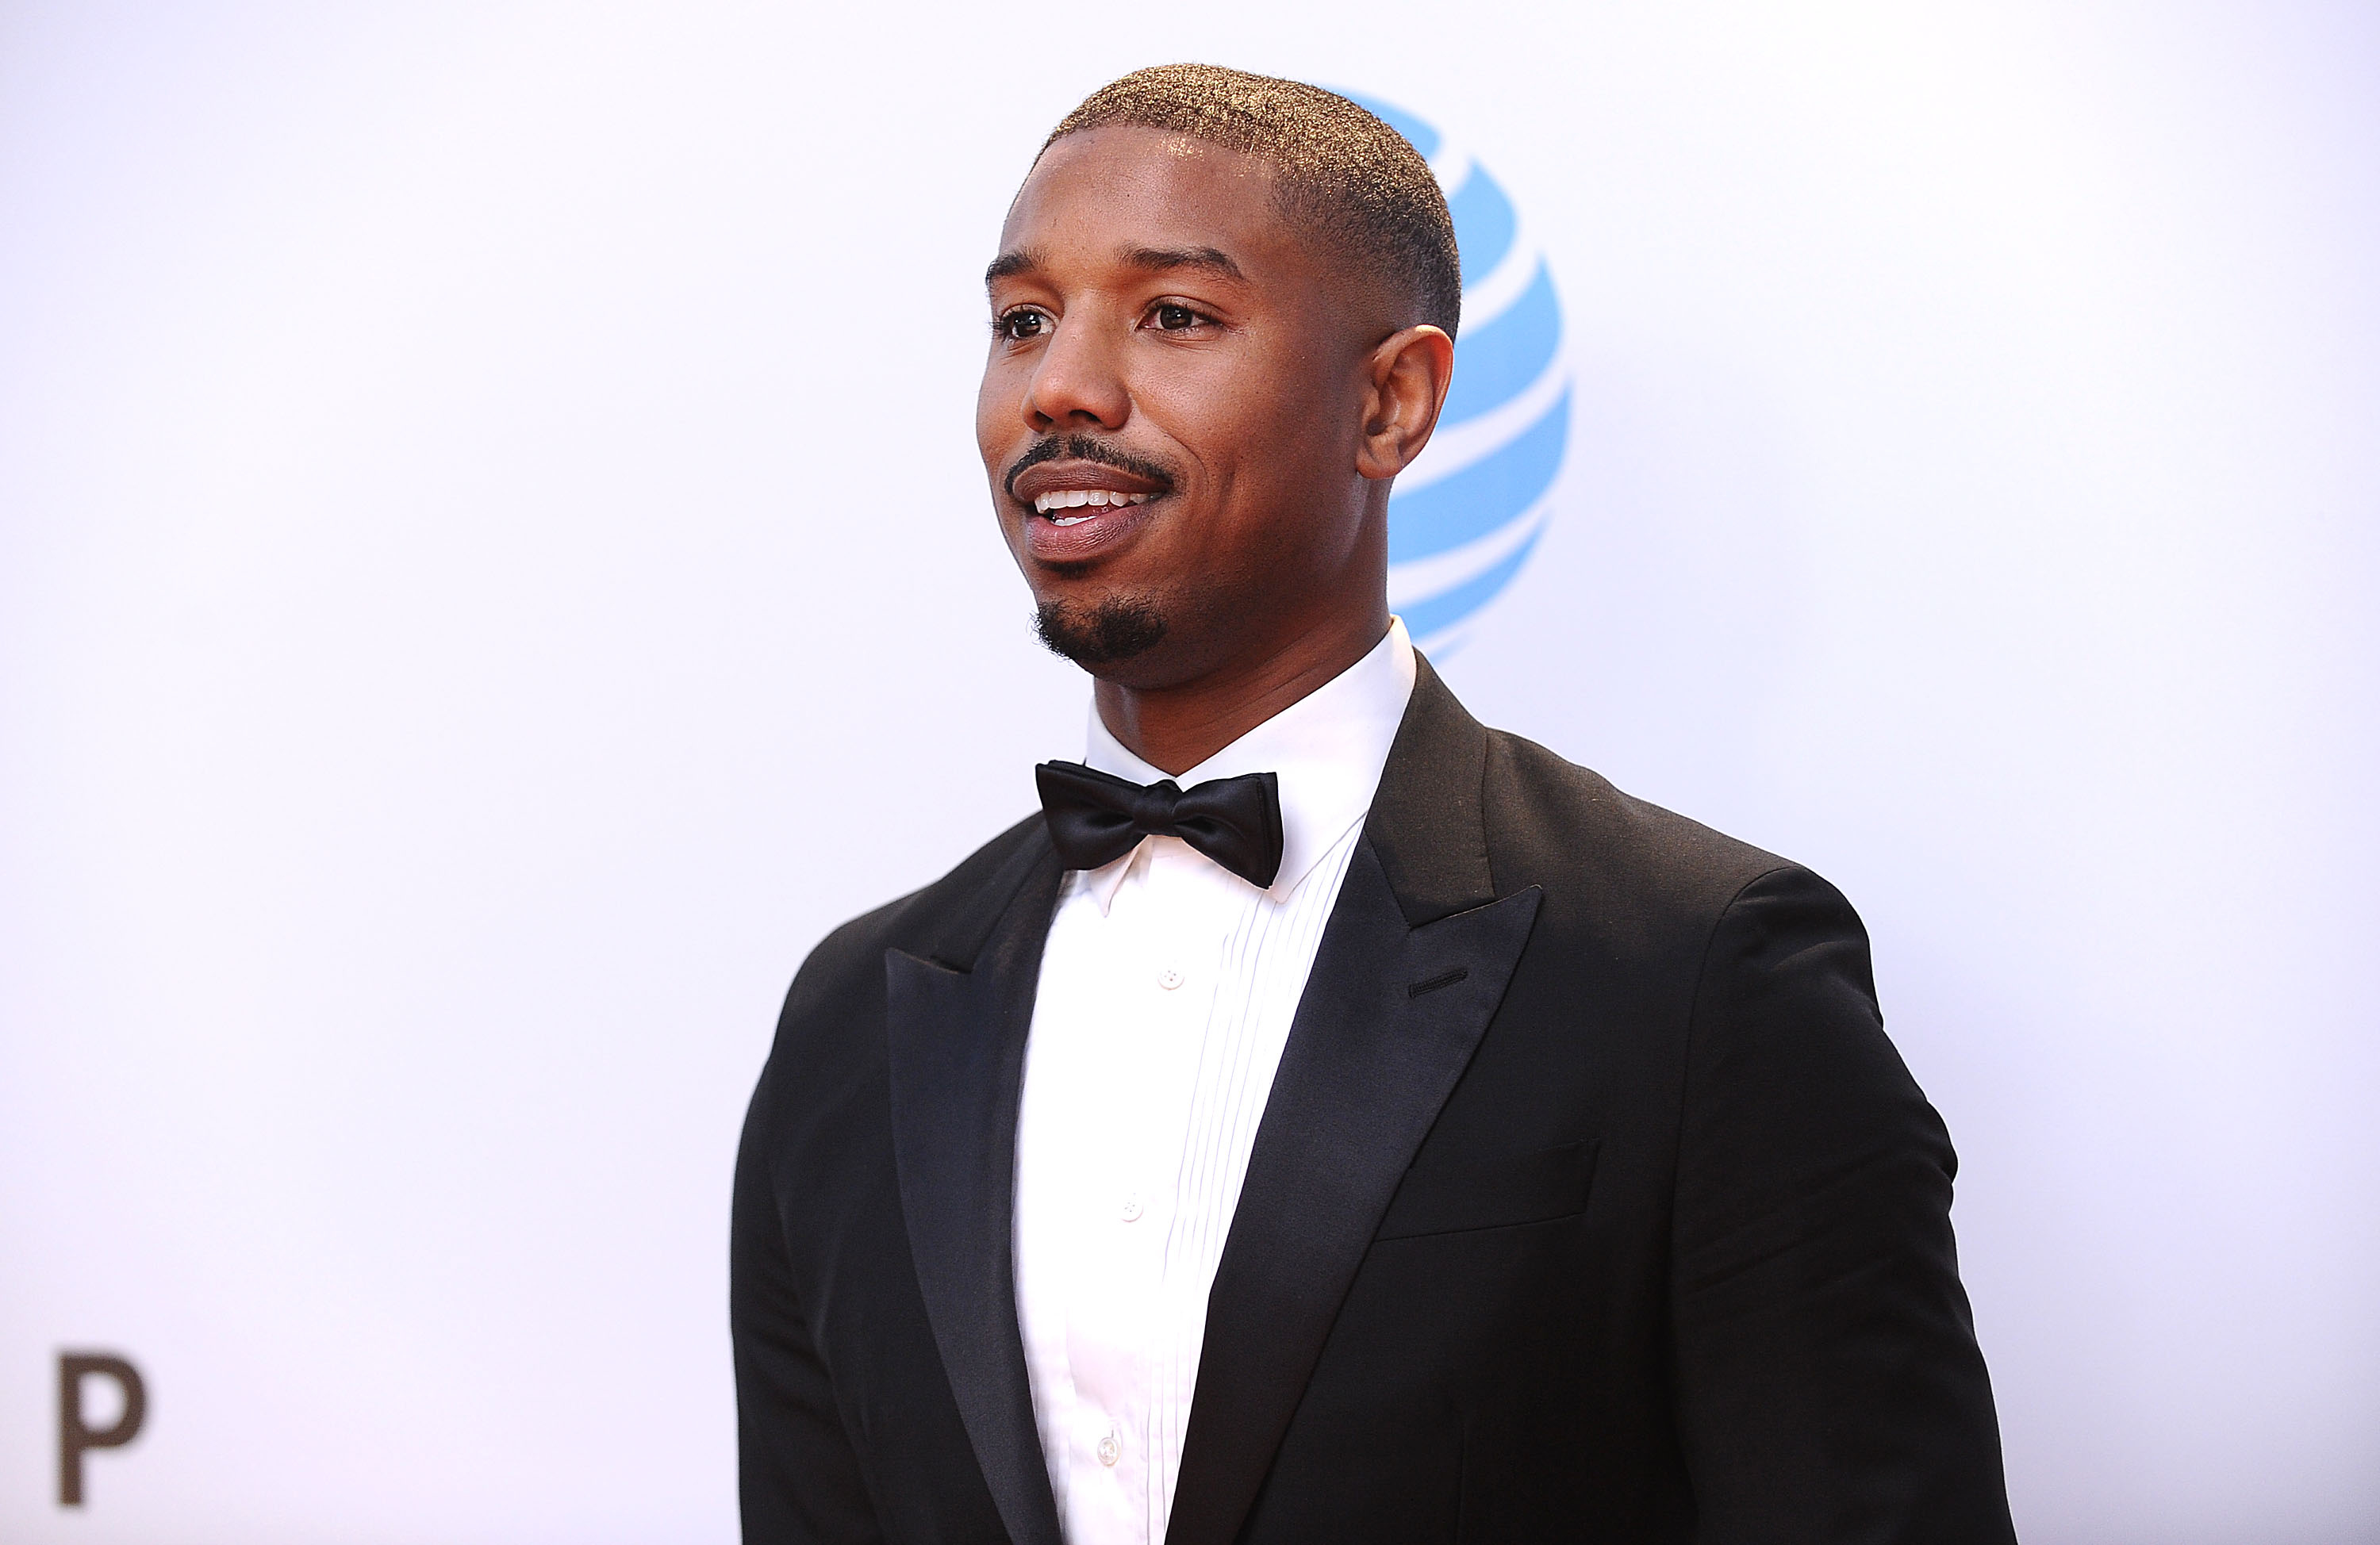 PASADENA, CA - FEBRUARY 05:  Actor Michael B. Jordan attends the 47th NAACP Image Awards at Pasadena Civic Auditorium on February 5, 2016 in Pasadena, California.